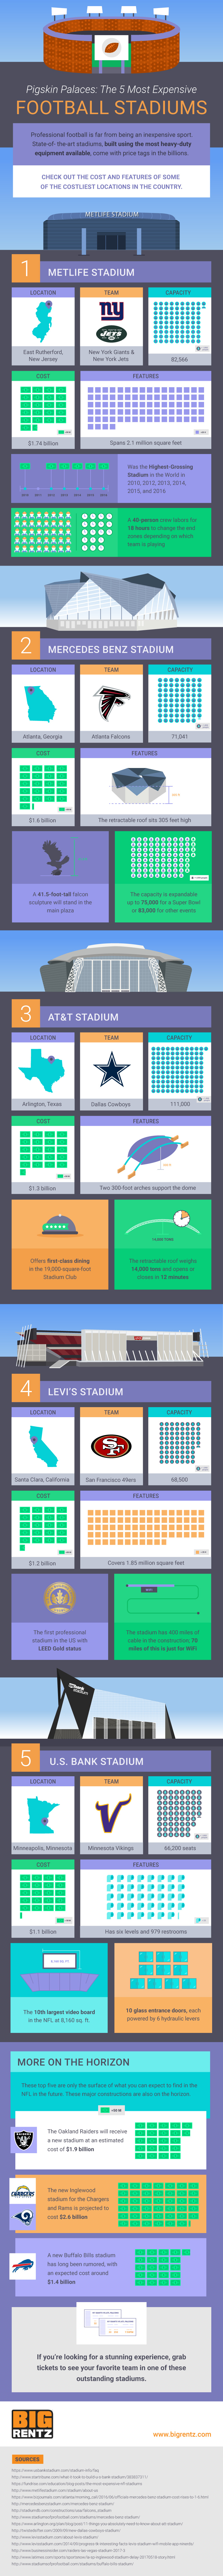 Pigskin Palaces: 5 Most Expensive Stadiums